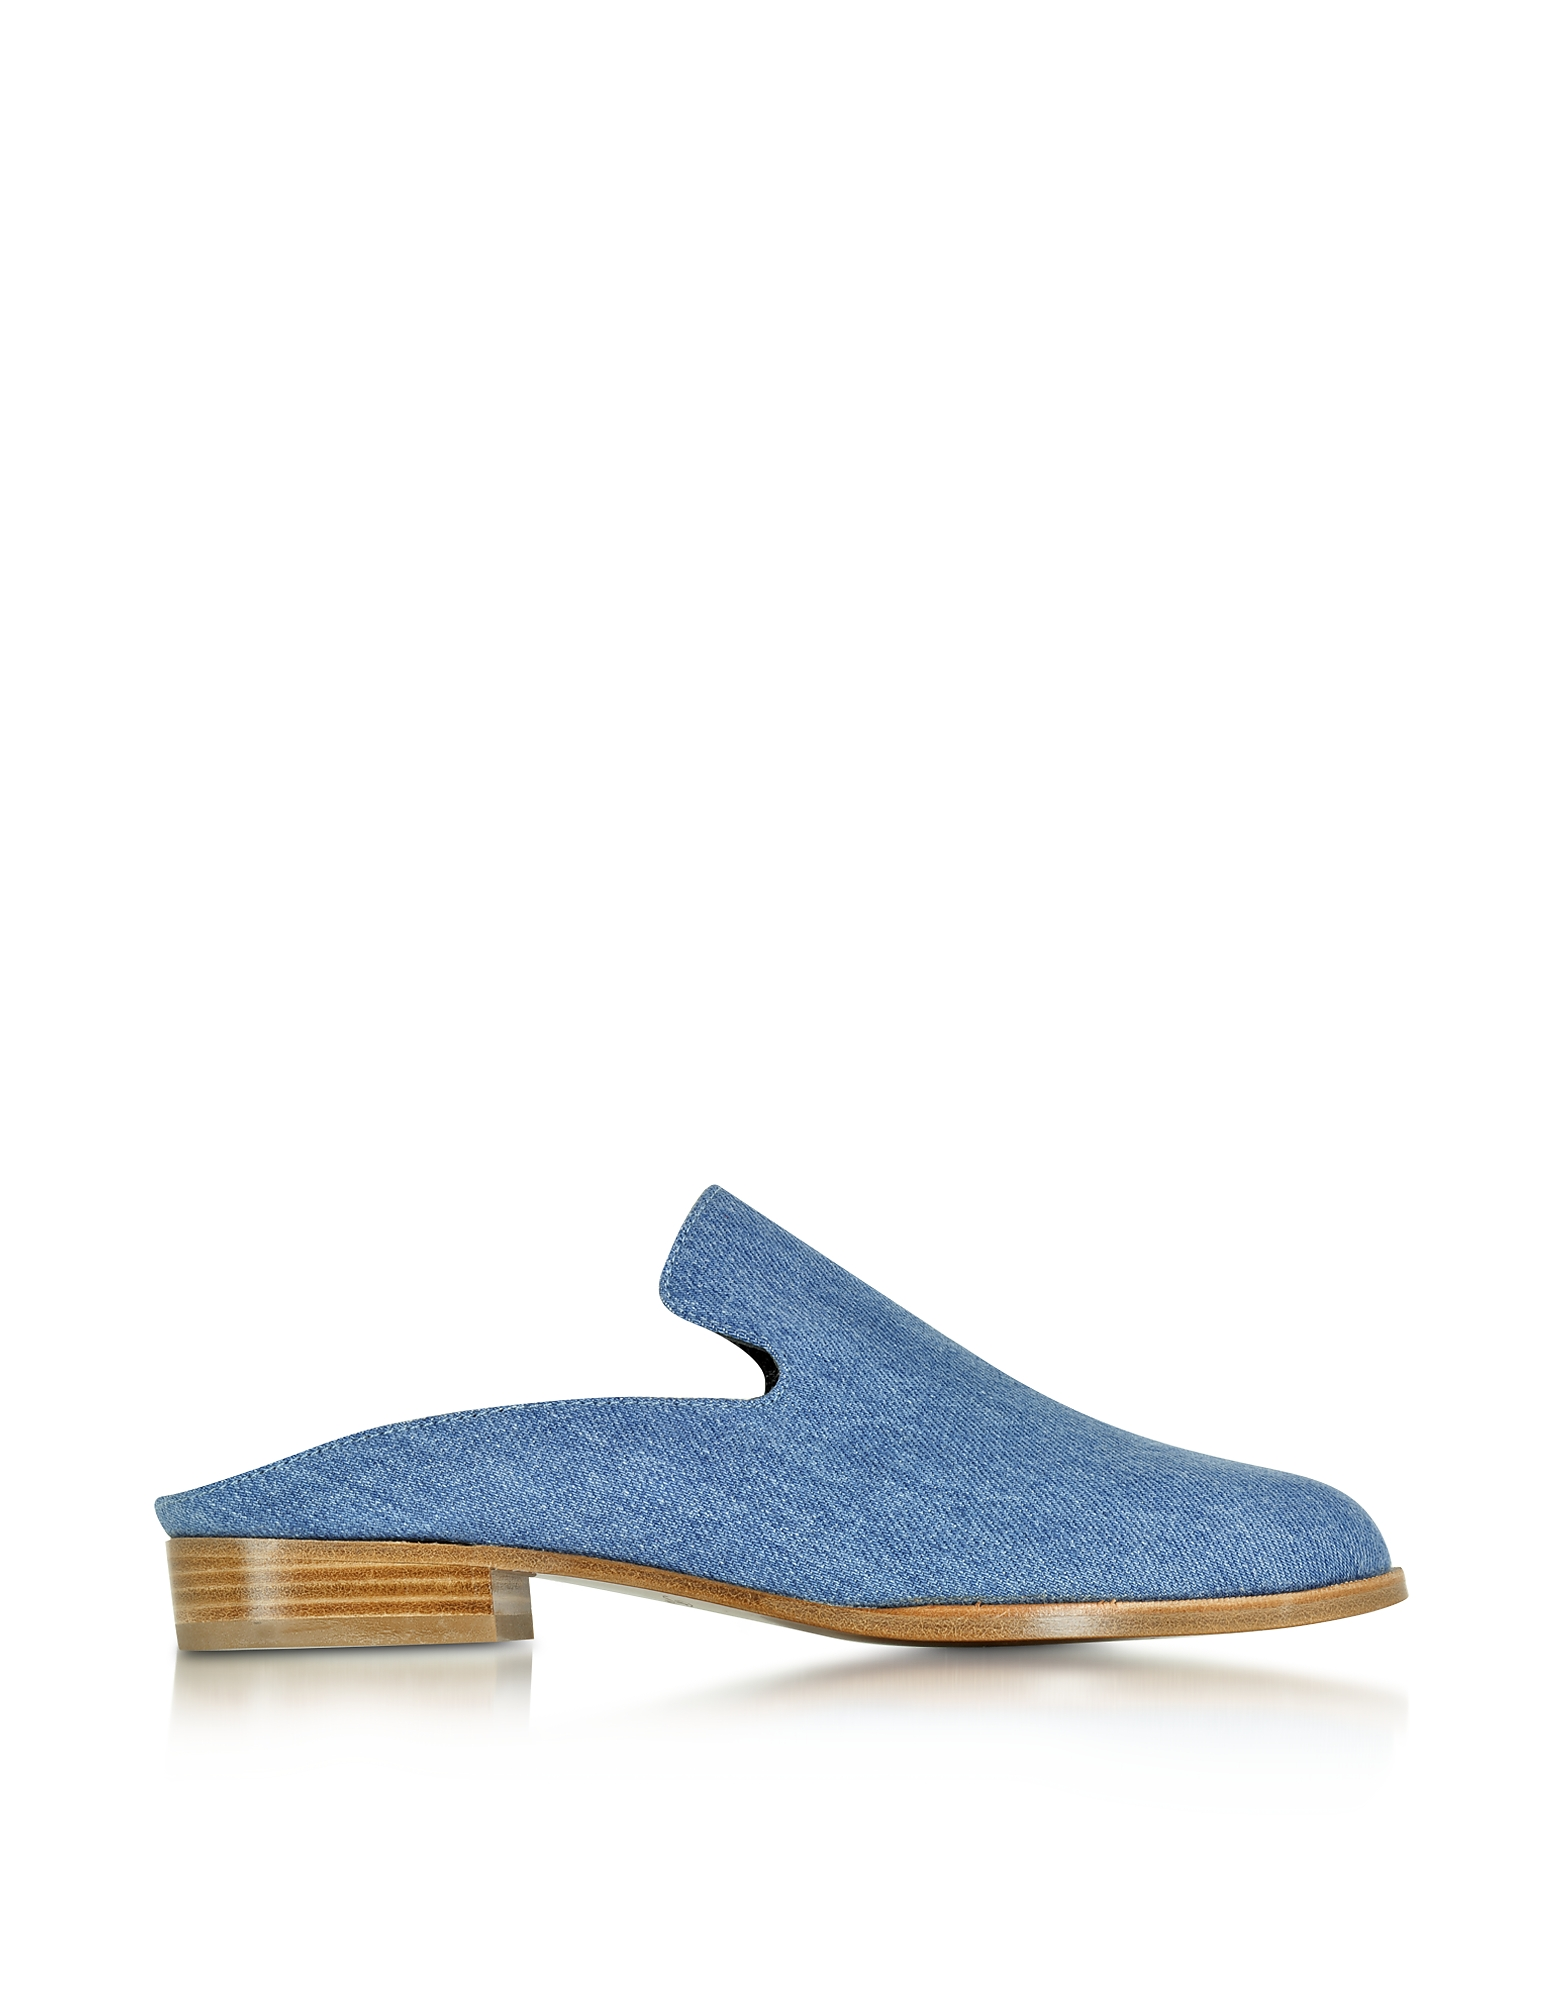 Robert Clergerie Shoes, Alicet Blue Denim Mule